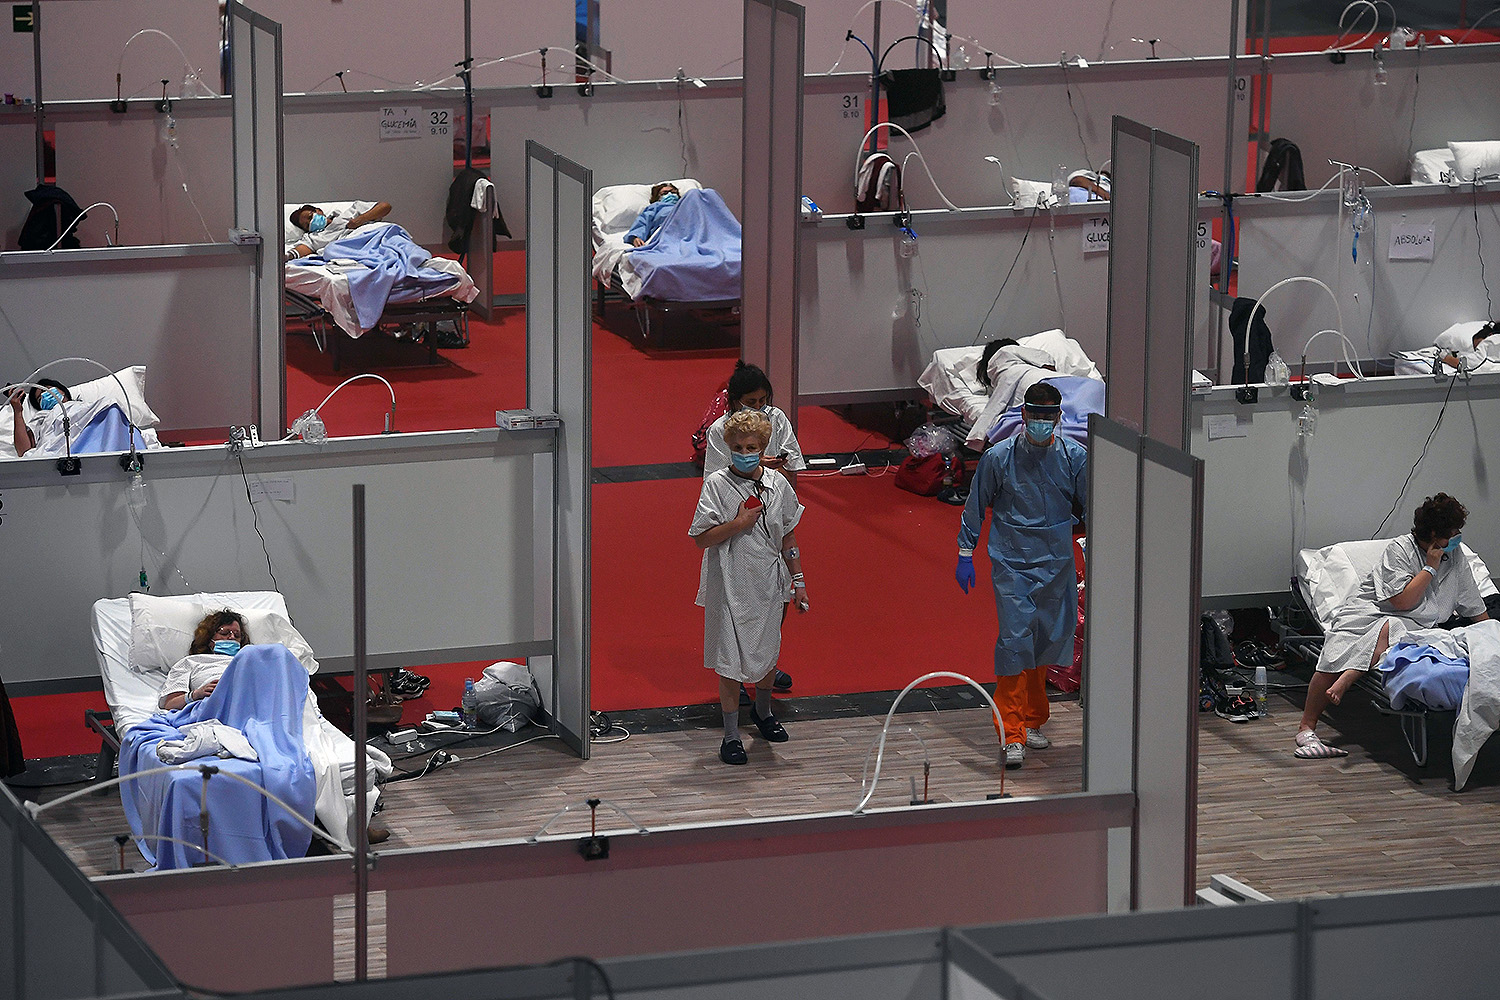 A temporary hospital for COVID-19 patients is set up at a convention center in Madrid.   PIERRE-PHILIPPE MARCOU/AFP via Getty Images